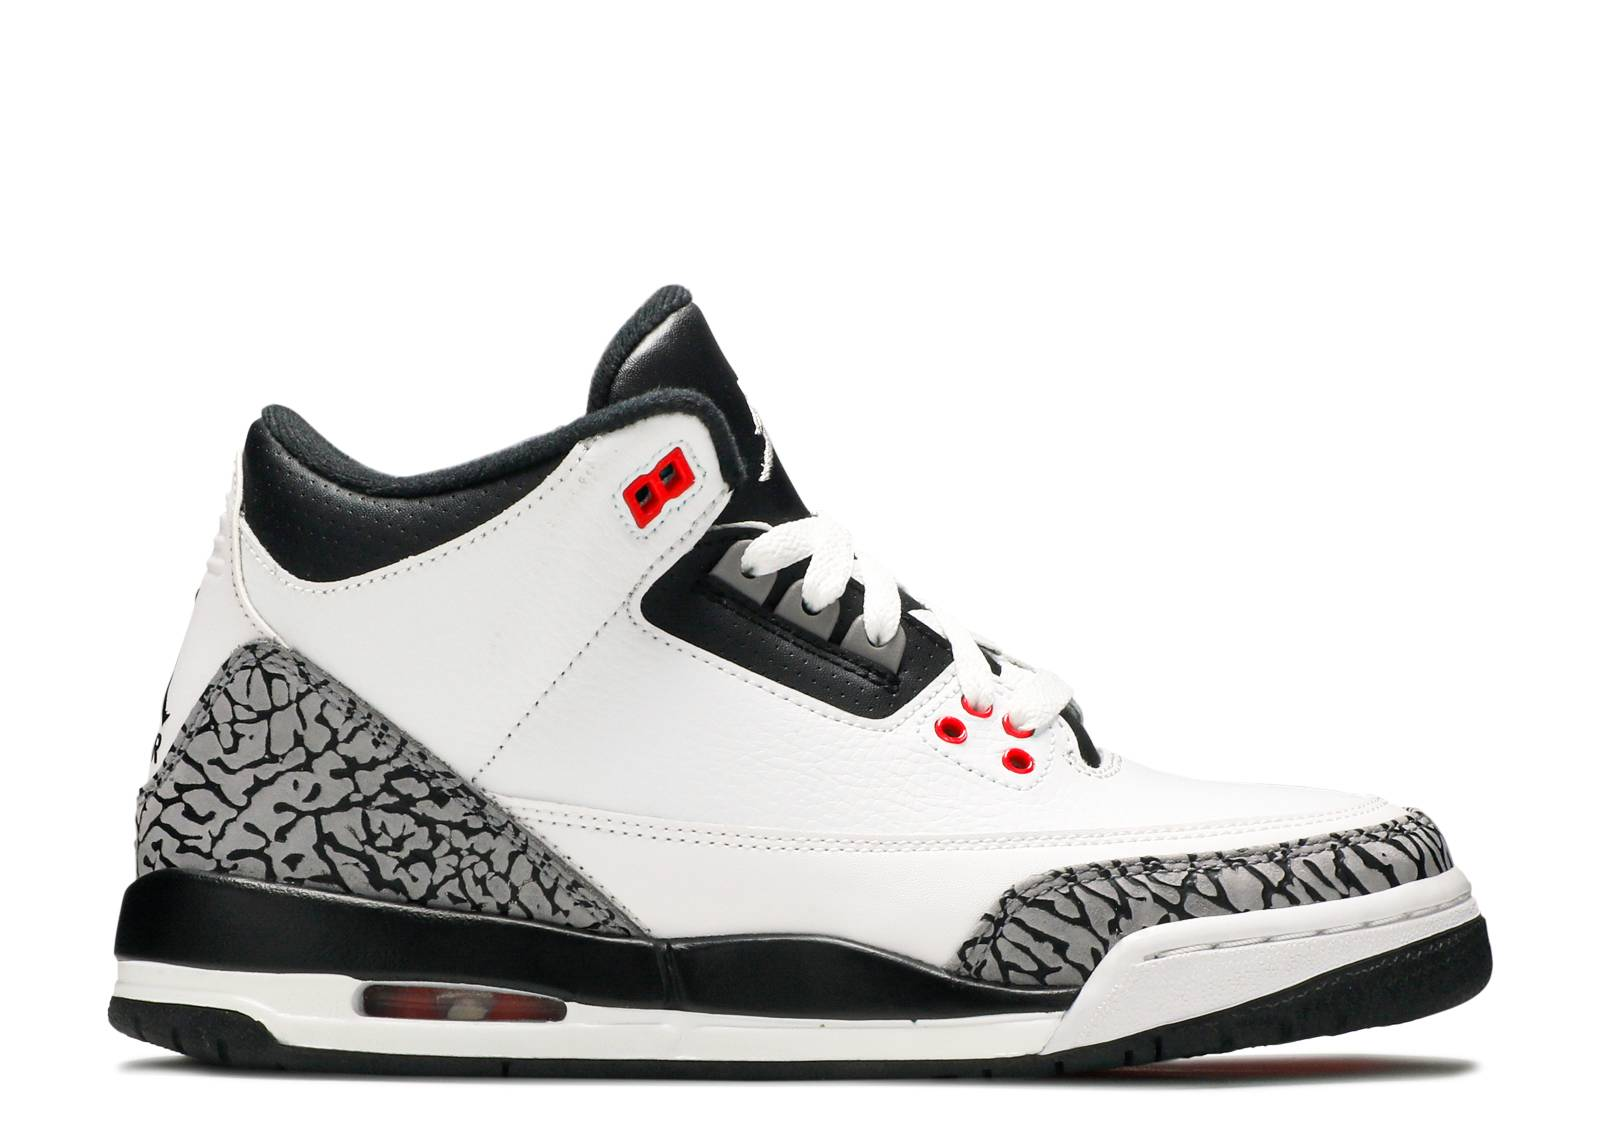 Air jordan 3 retro bg gs infrared 23 air jordan for Retro images